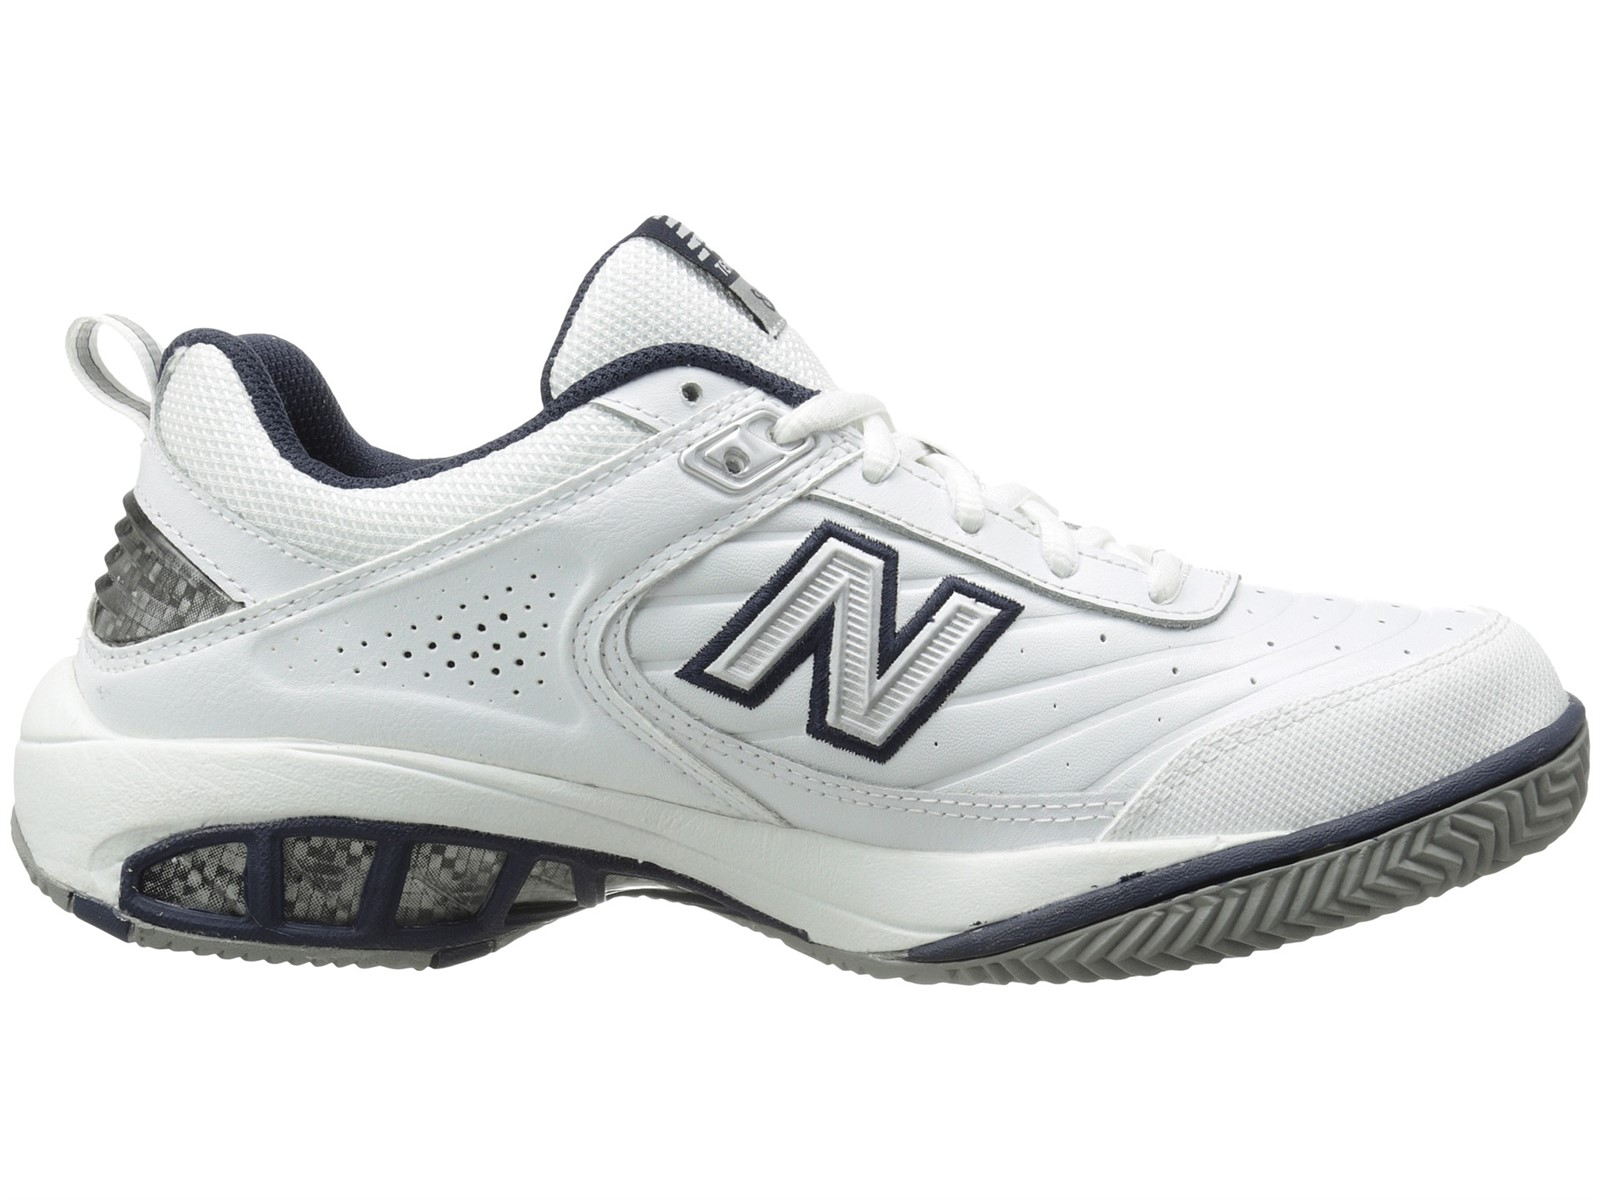 new balance mc806 tennis shoes mens size 10 wide width new